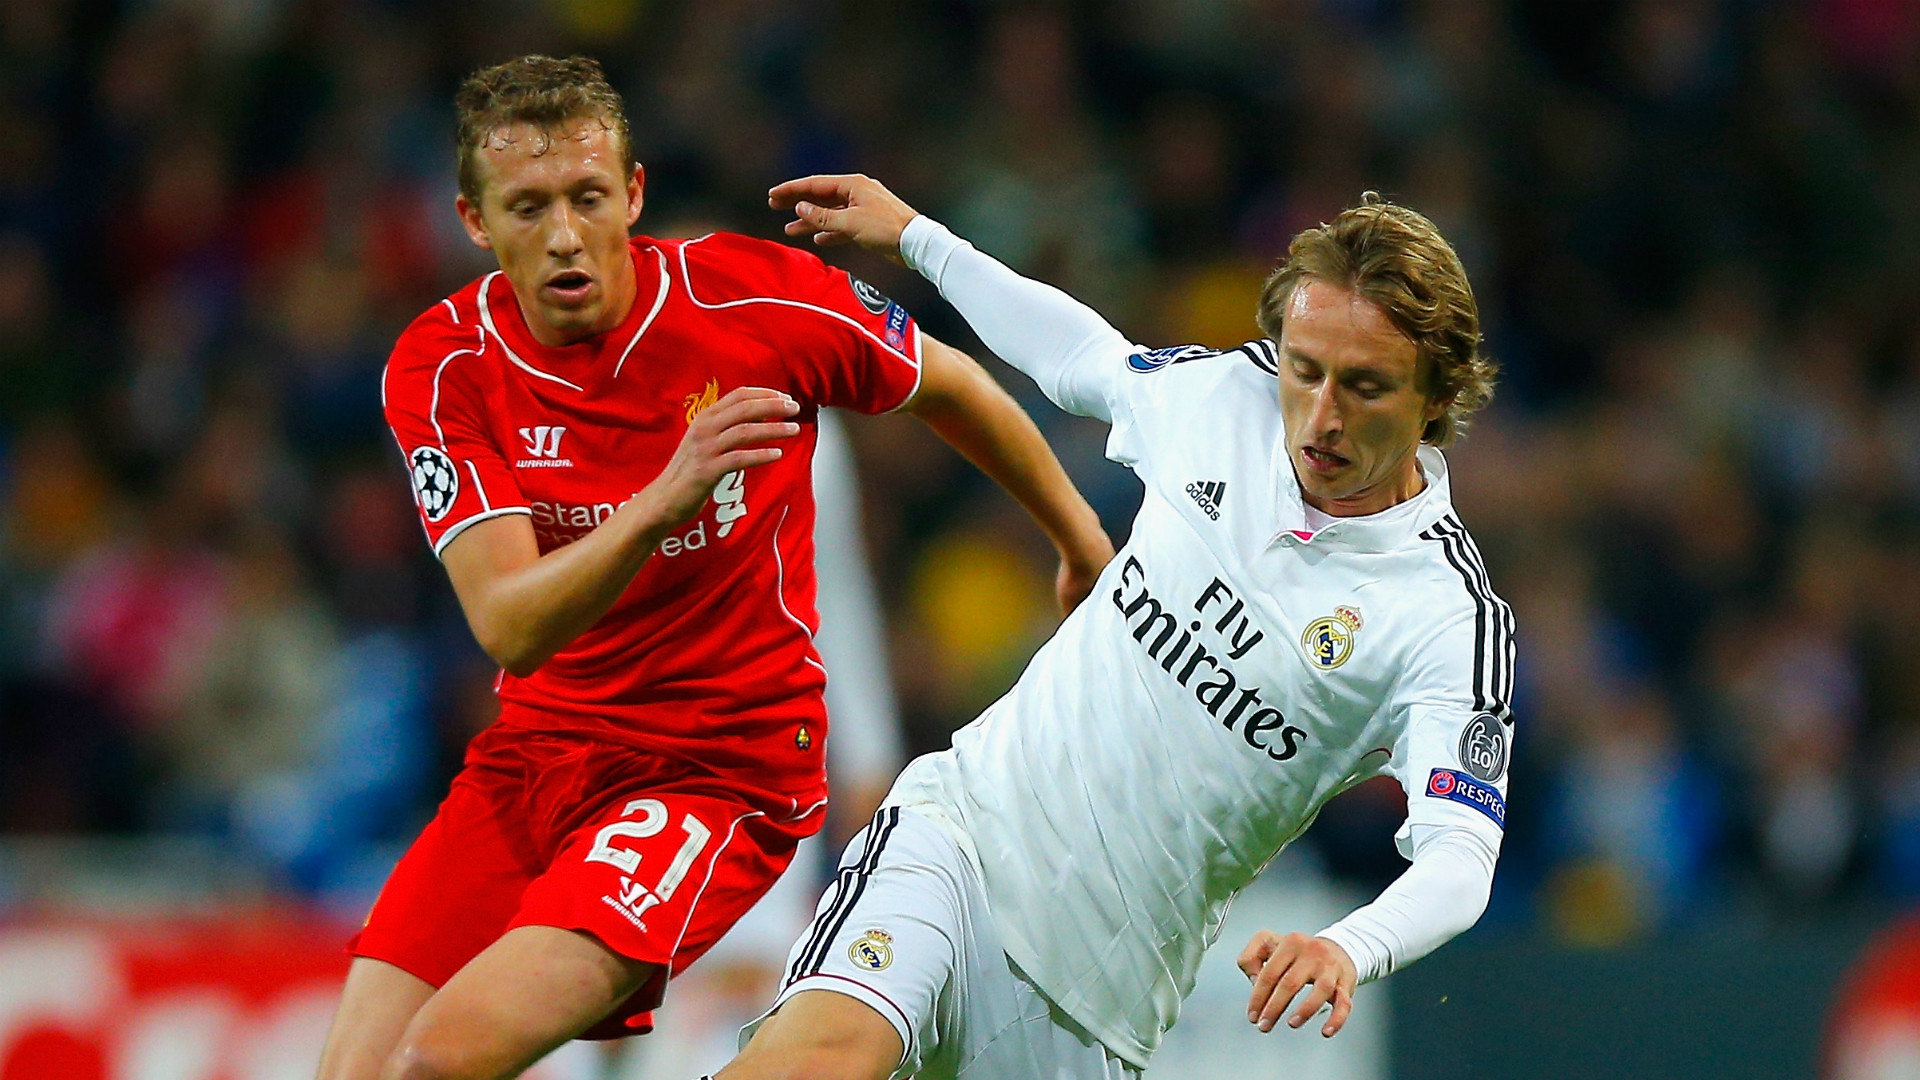 Liverpool vs Real Madrid Champions League 2014-15